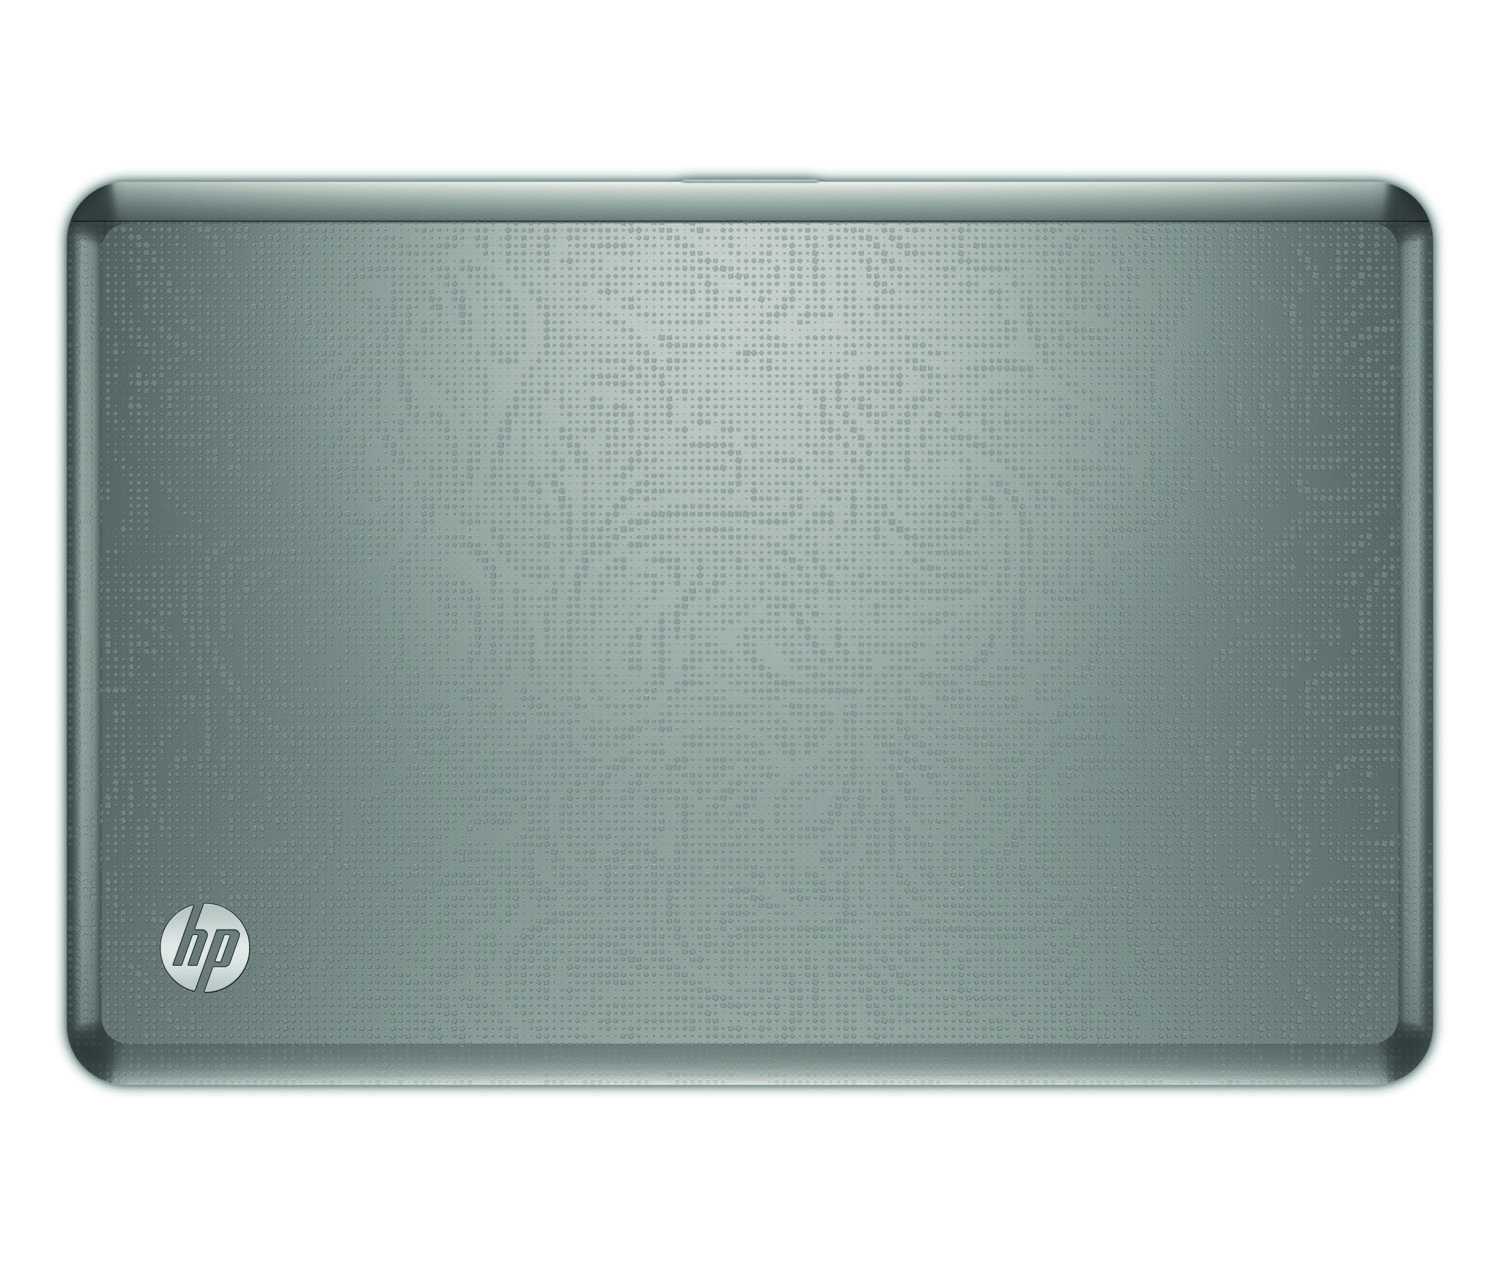 HP Envy 17, top on white